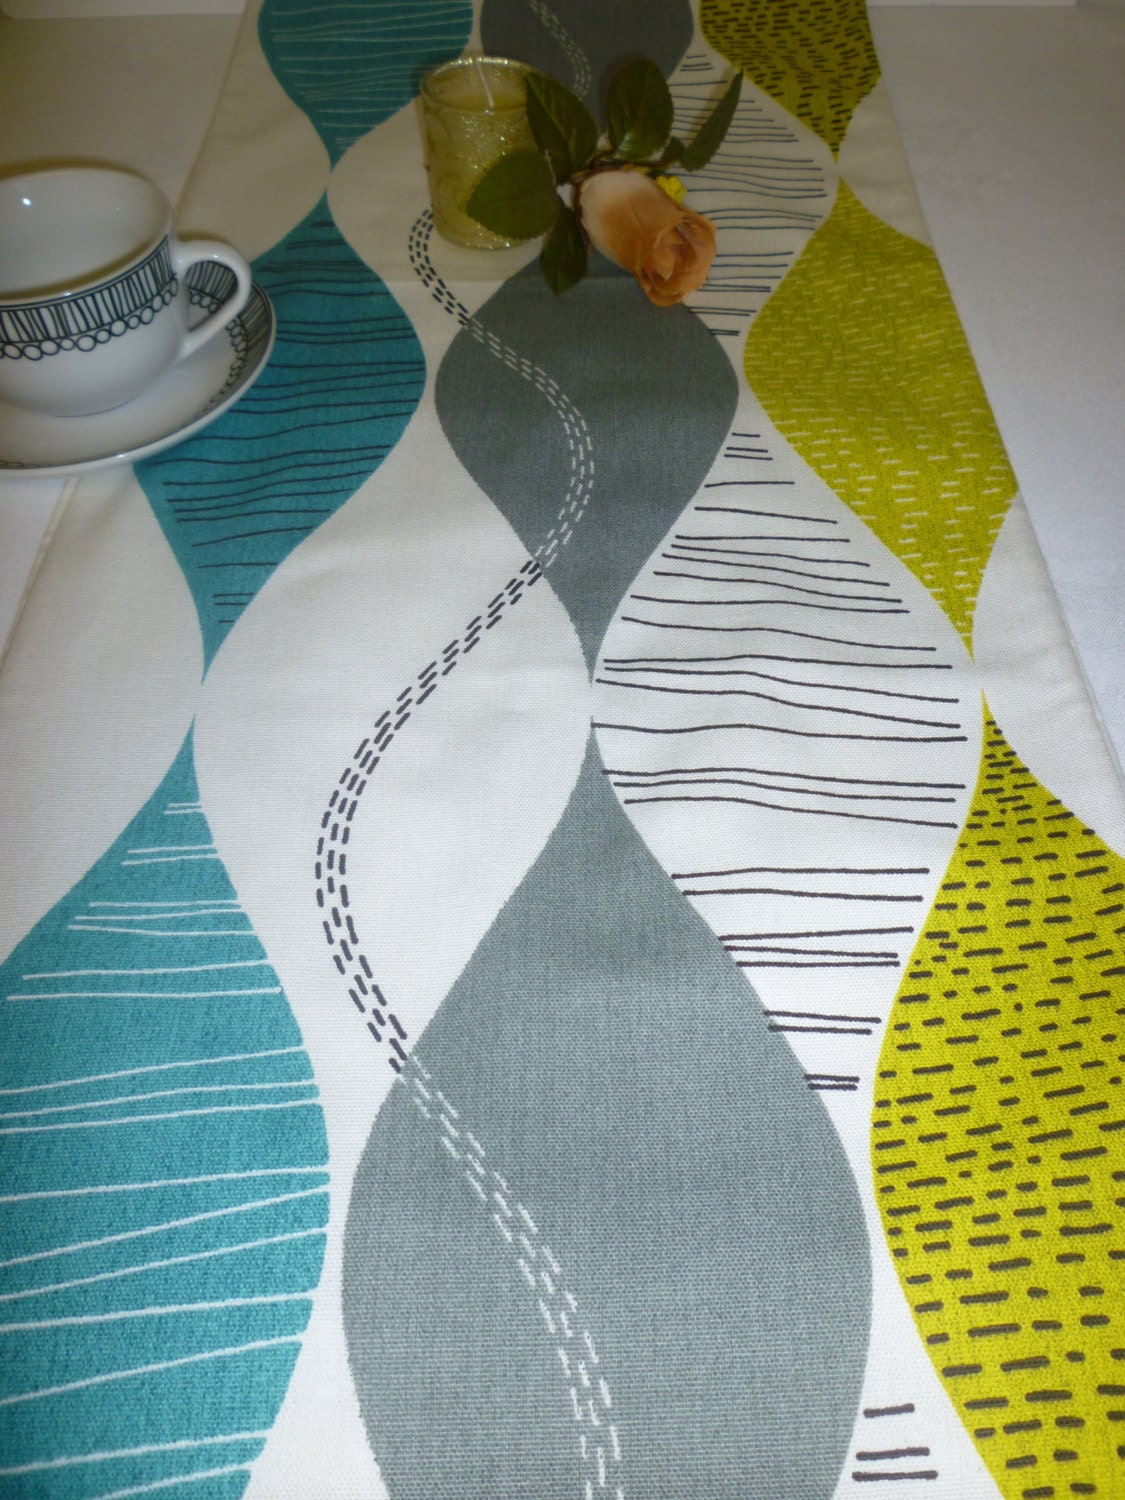 78 Retro Teal Table Runner Gray Green And White 6 Foot